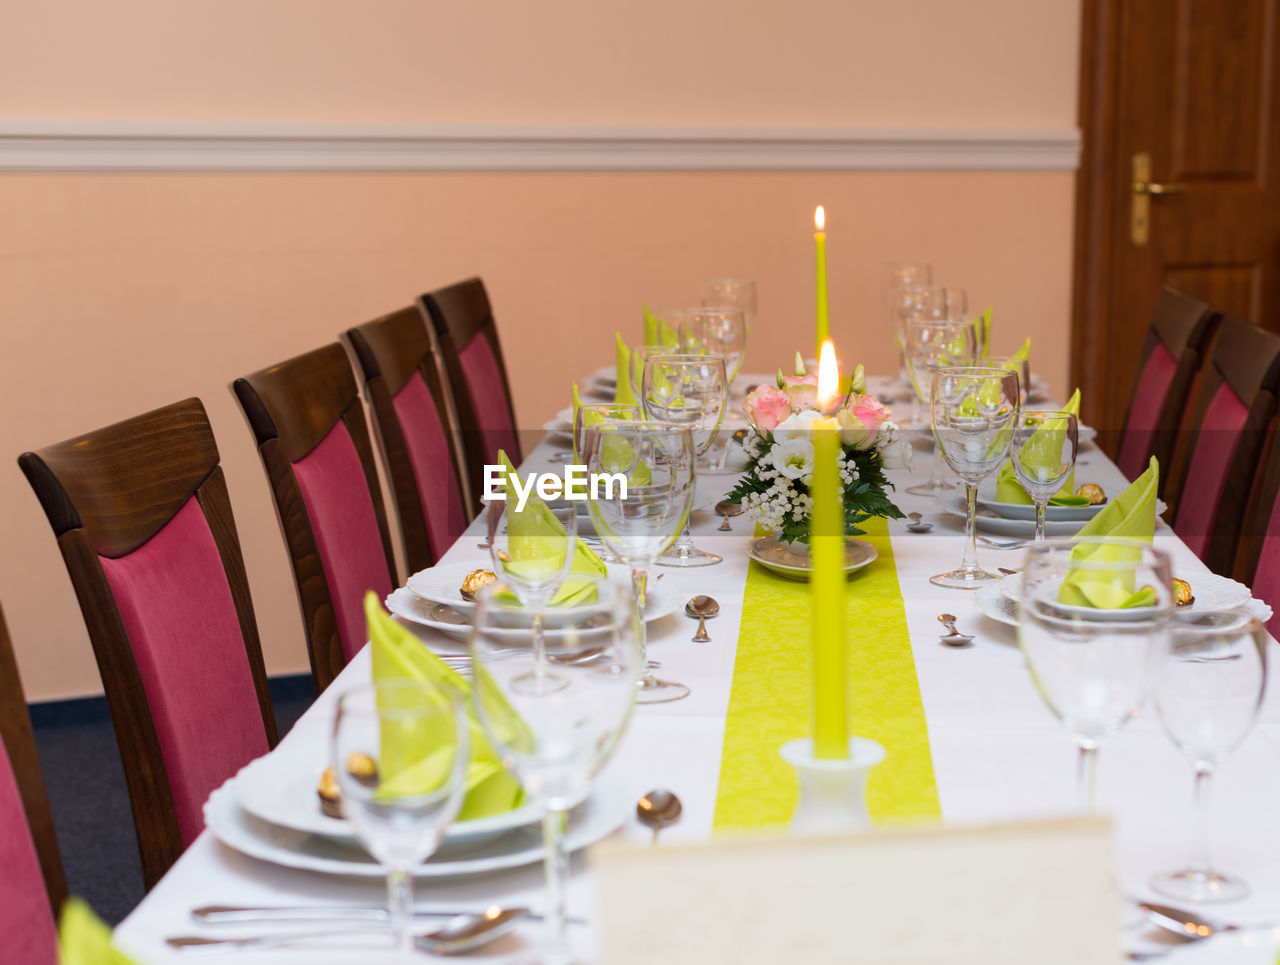 table, place setting, candle, wedding, dining table, plate, fork, napkin, celebration, chair, drinking glass, arrangement, table knife, indoors, food and drink, tablecloth, silverware, no people, flower, restaurant, neat, celebration event, dinner, food, luxury, food and drink industry, wedding ceremony, wineglass, dining room, centerpiece, life events, wedding cake, party - social event, buffet, close-up, freshness, day